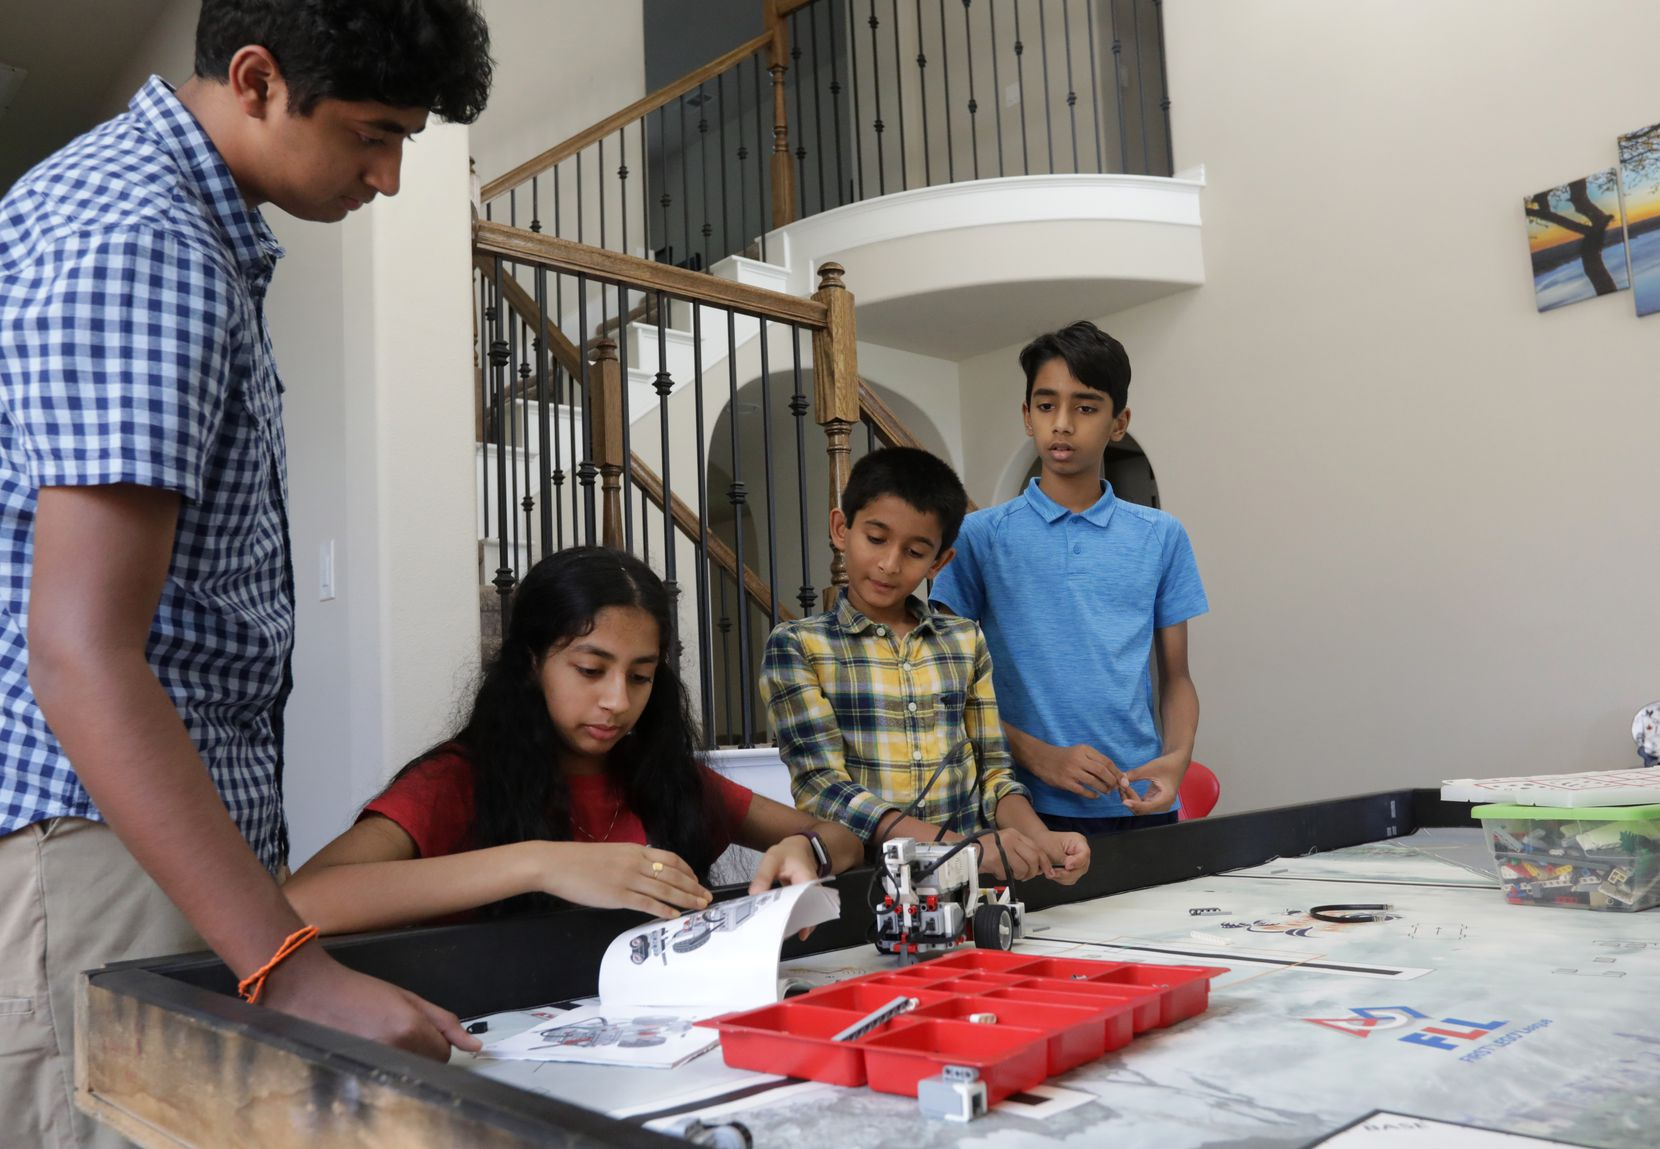 Mihit Sai Garlanka (from left) assists 13-year-old Samriddhi Garlanka, 11-year-old Santhosh Kavula and 12-year-old Jai Muppalla as they build a LEGO robot at his home in McKinney.